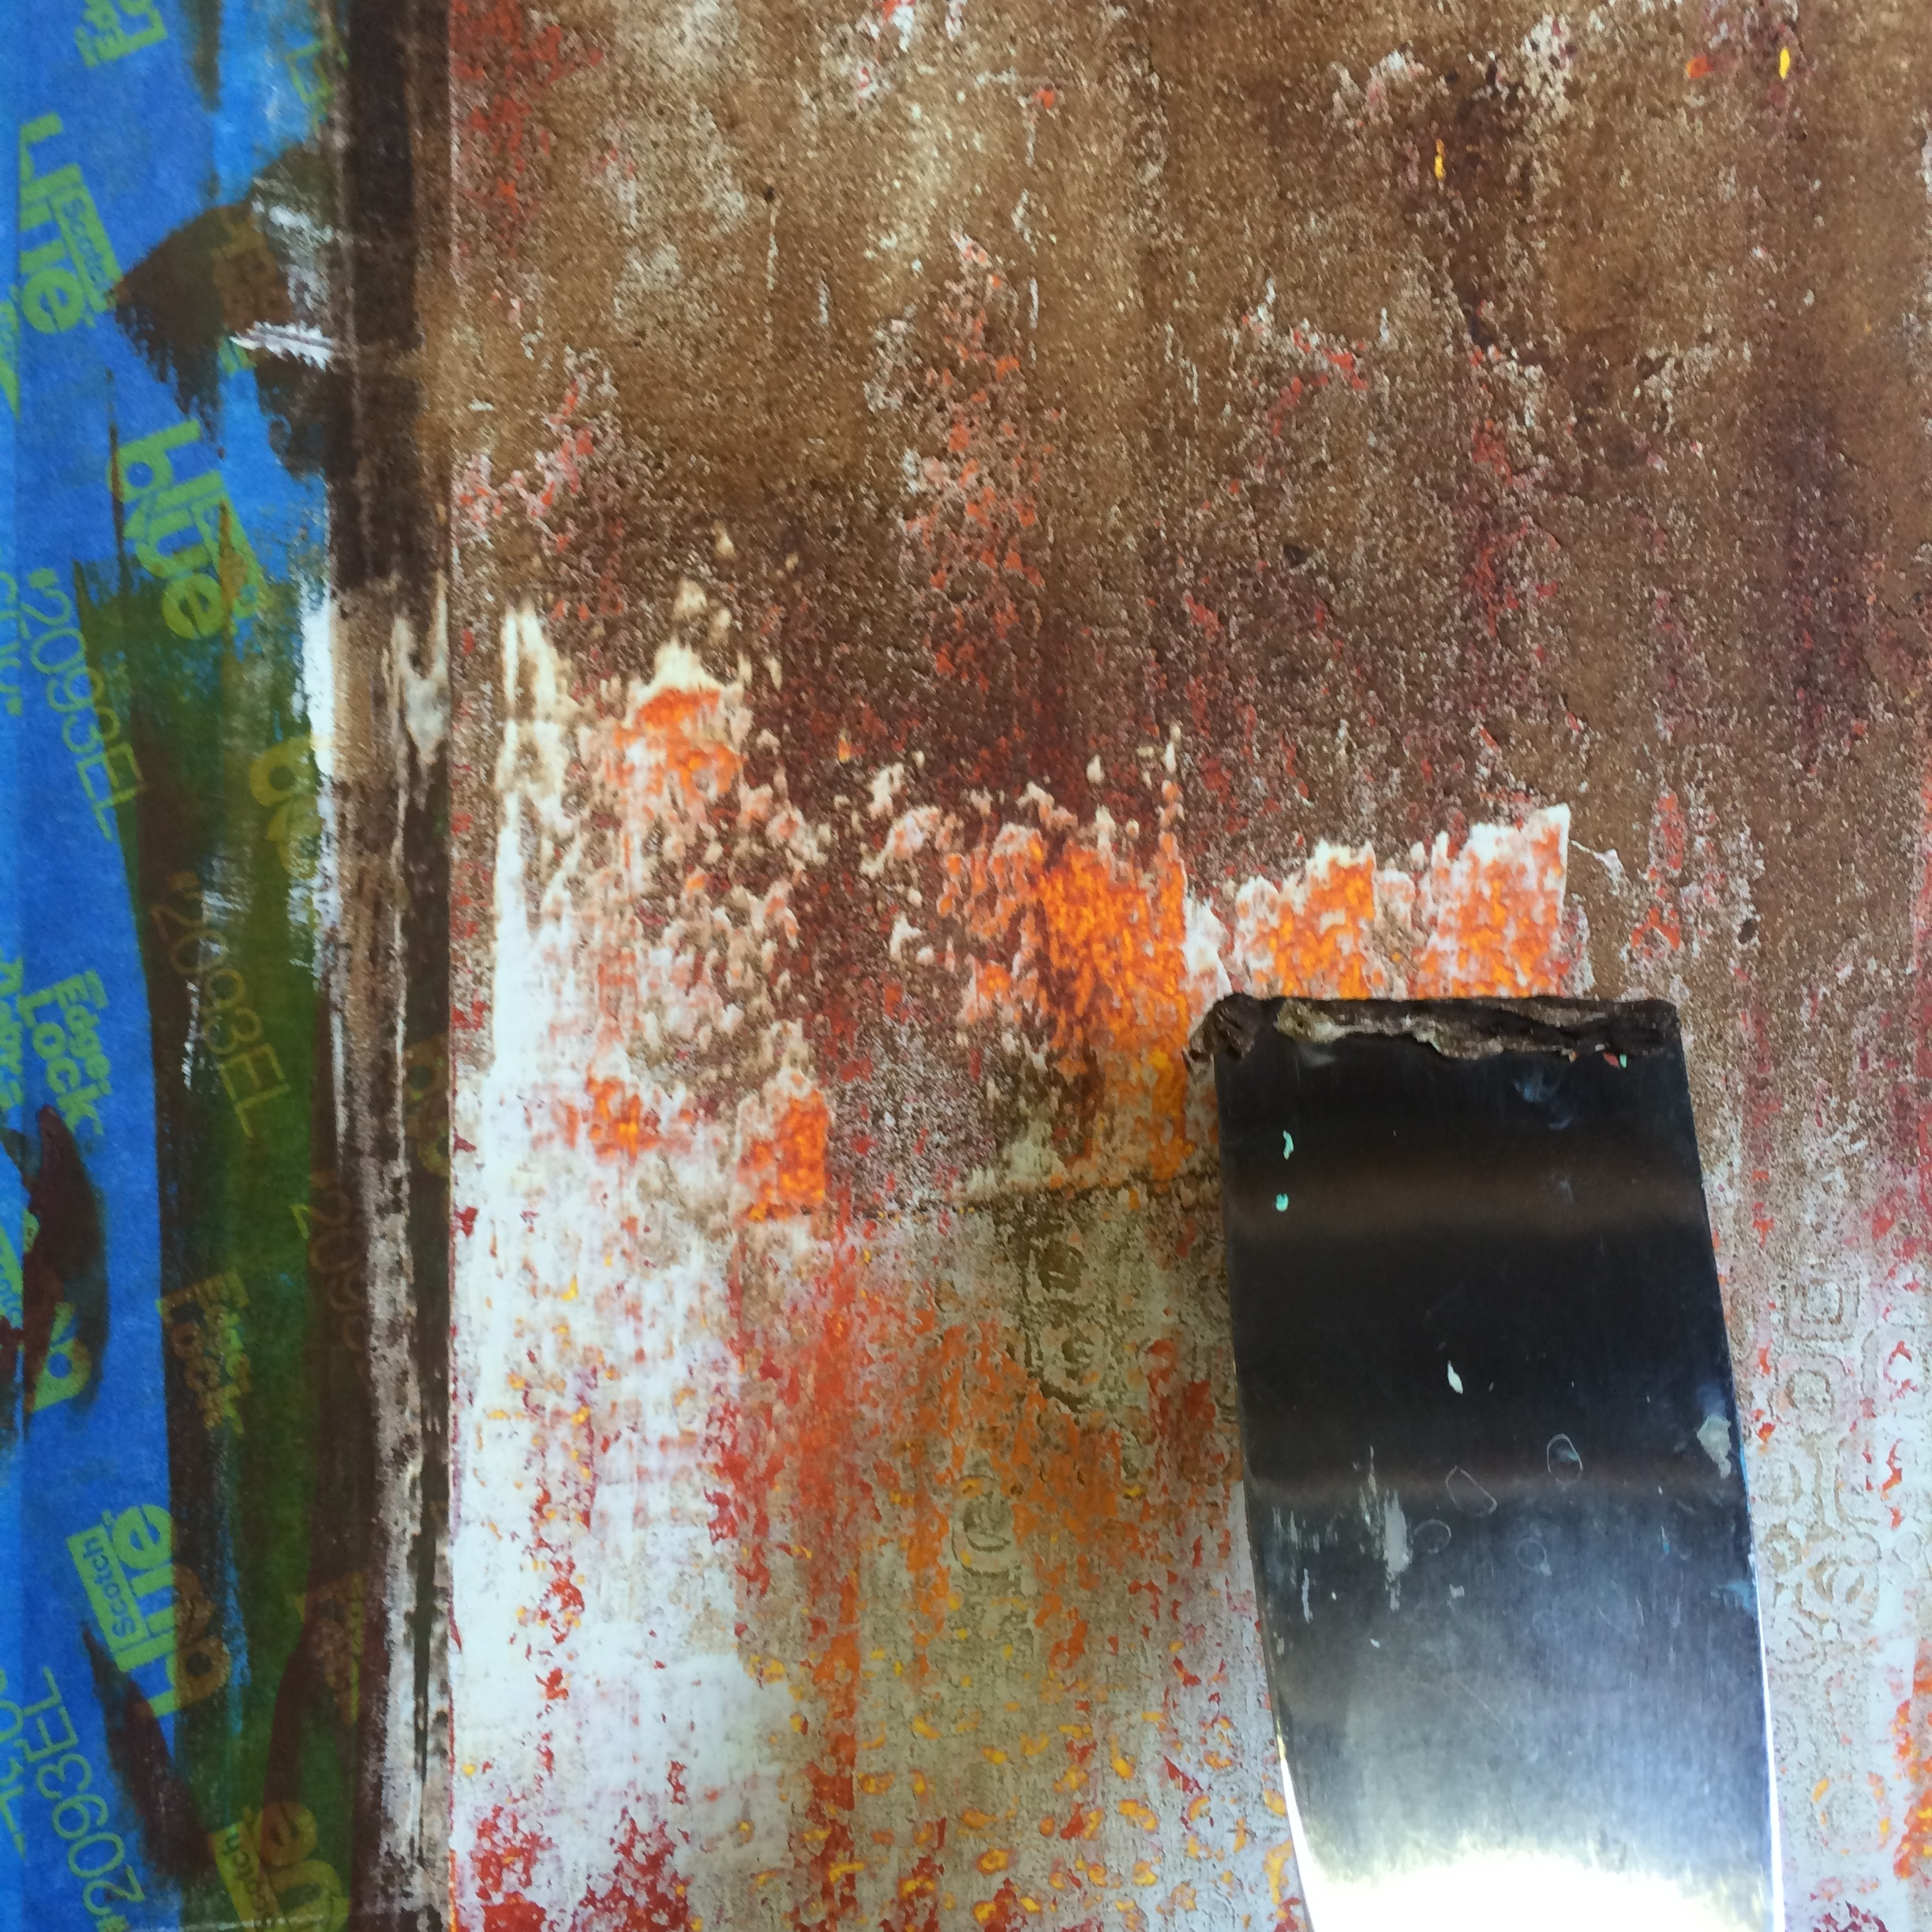 scraping with a utility knife to reveal underlying colors